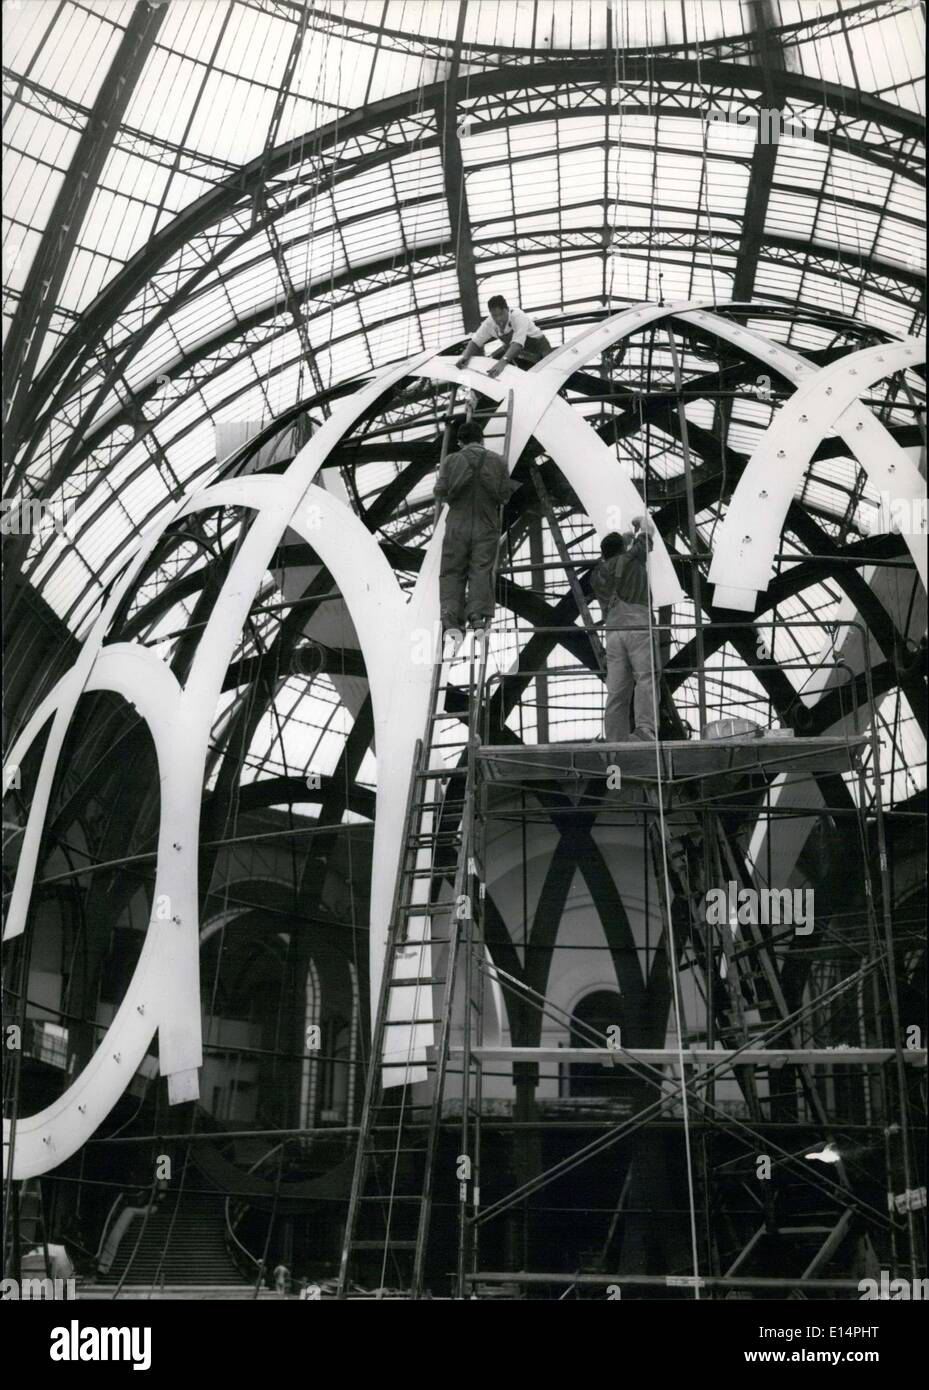 Apr. 12, 2012 - AUTOMOBILE SHOW PREPARATION: AS EVERY YEAR, AT THE PARIS GRAND PALAIS, WILL BE HELD THE AUTOMOBILE SHOW WHERE WE HOPE TO SEE THE NEW MODELS WHICH WILL HE SHOWN TO THE PUBLIC. NPM: WORKMEN PREPARING A NEW ILLUMINATION PUT ON AN ENORMOUS GLOBE. - Stock Image